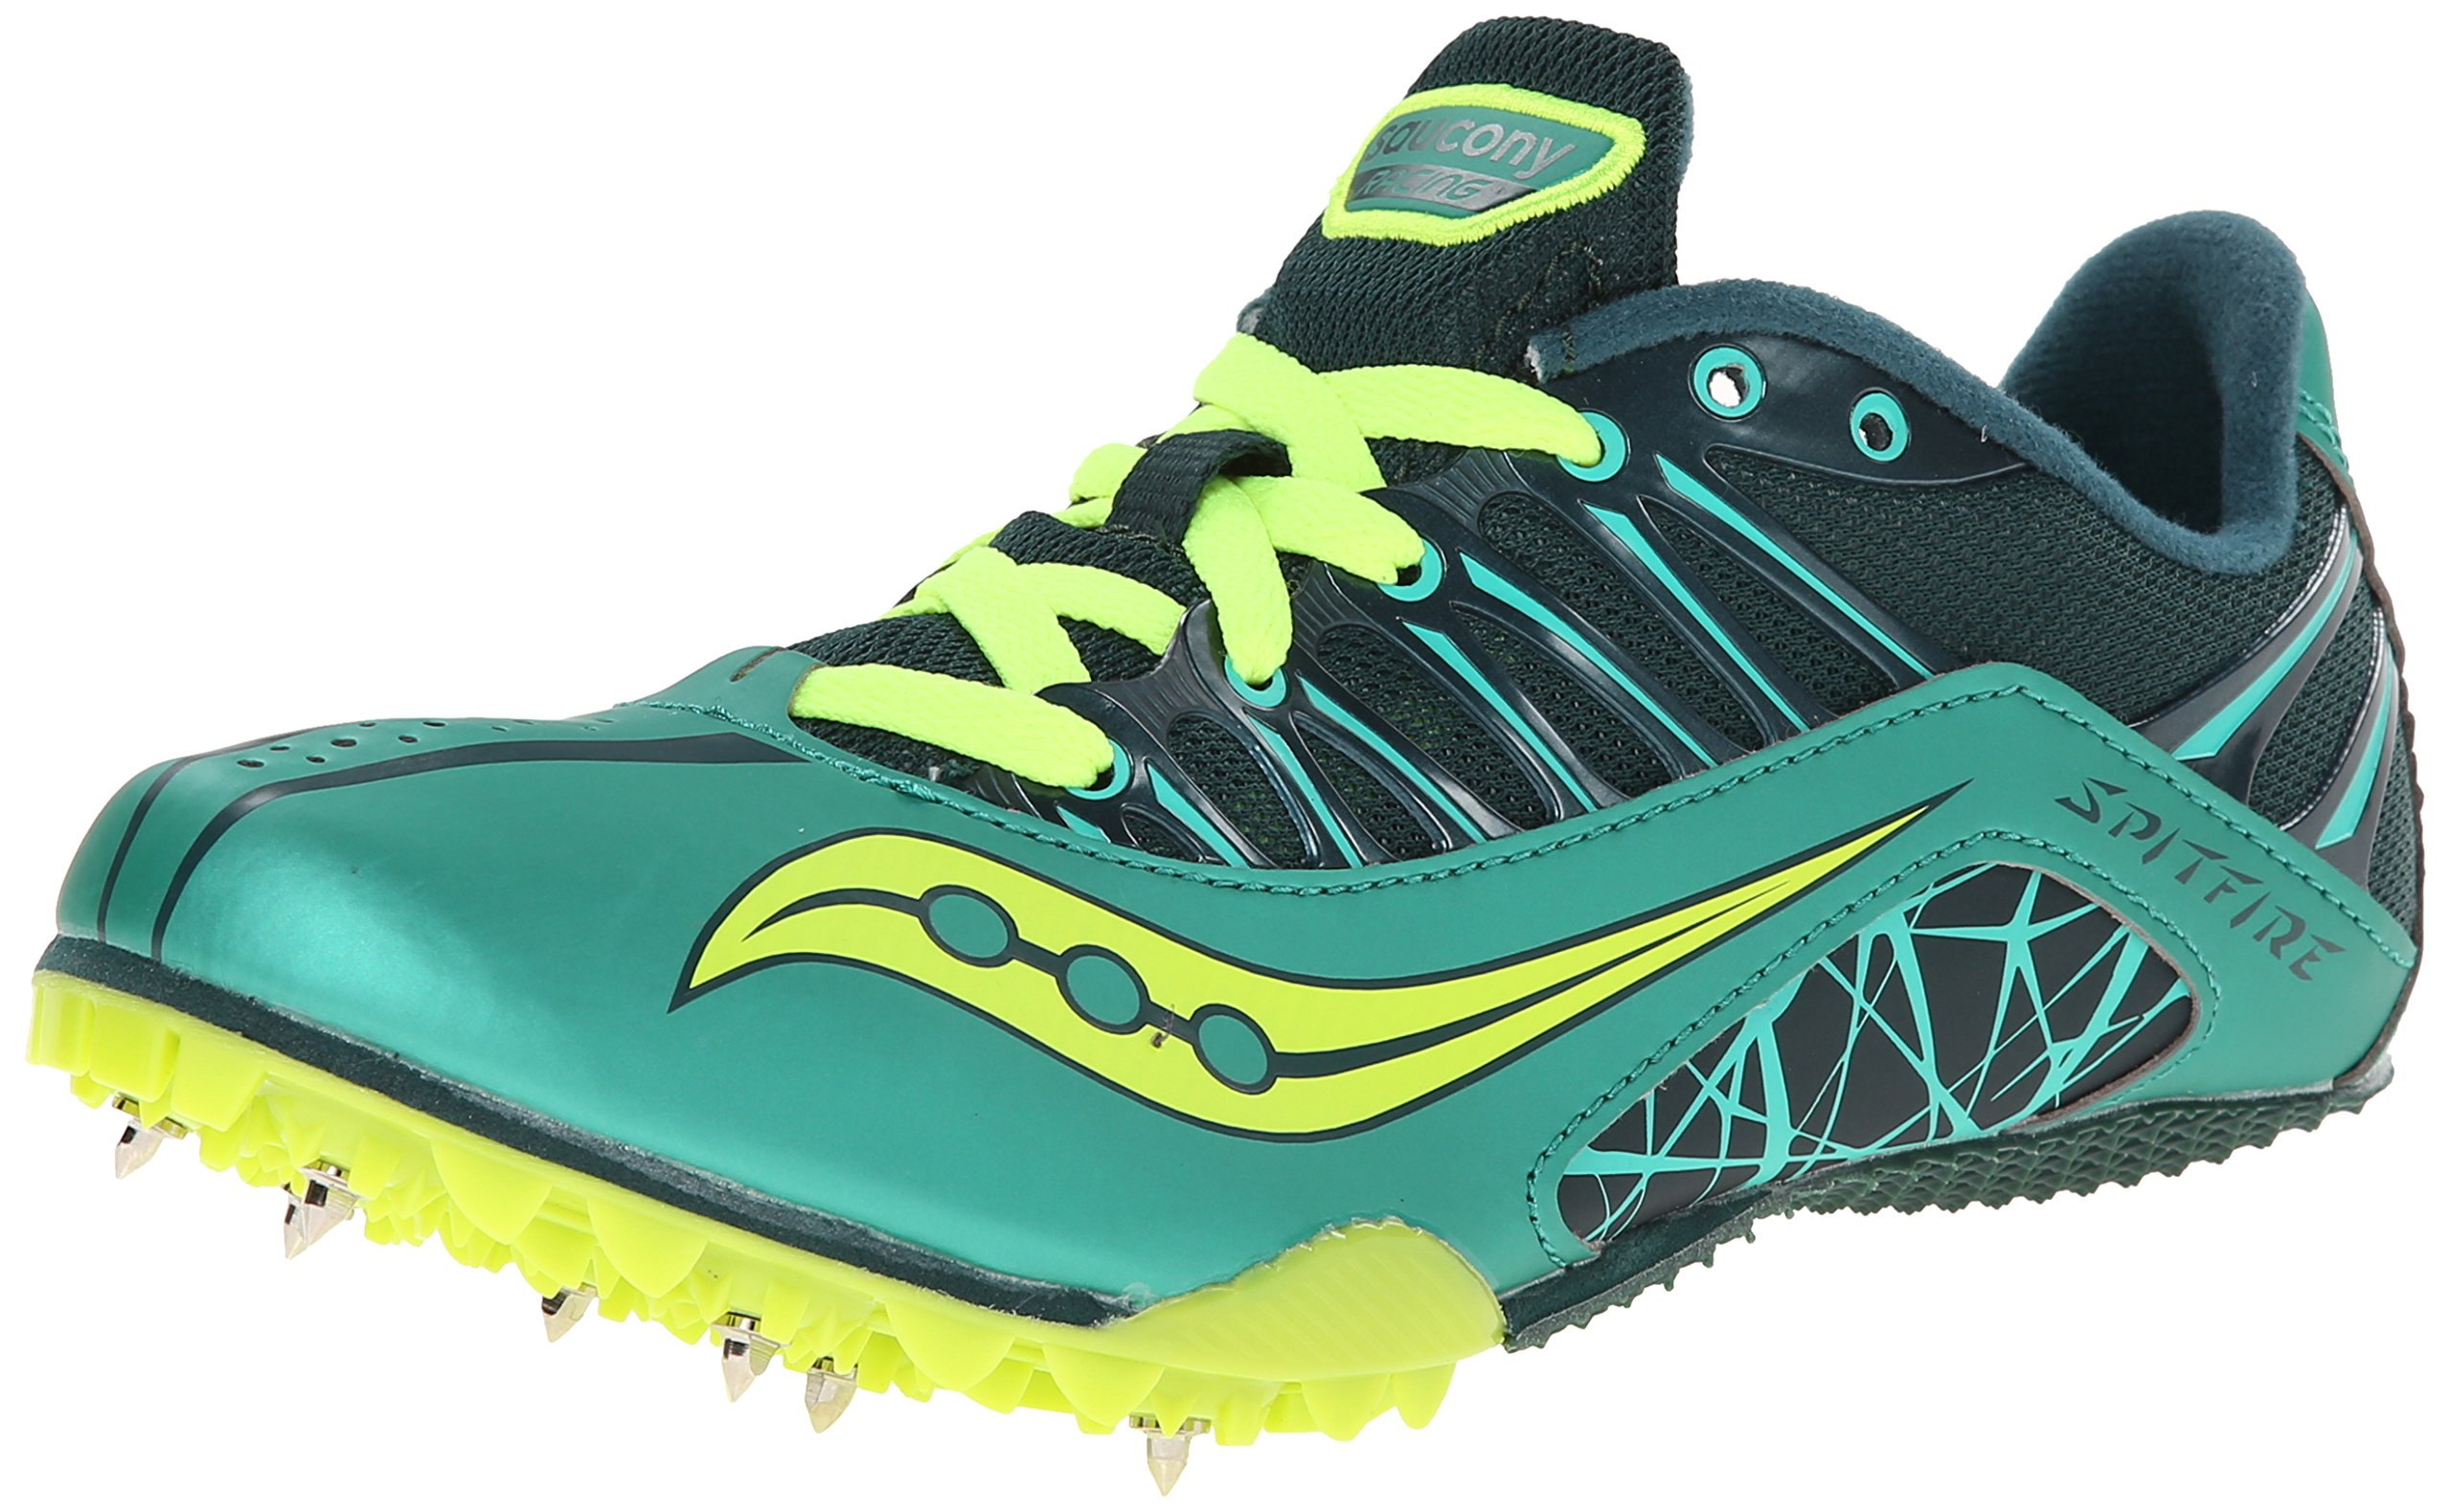 Saucony Women's Spitfire Track Spike Racing Shoe,Green/Citron,12 M US